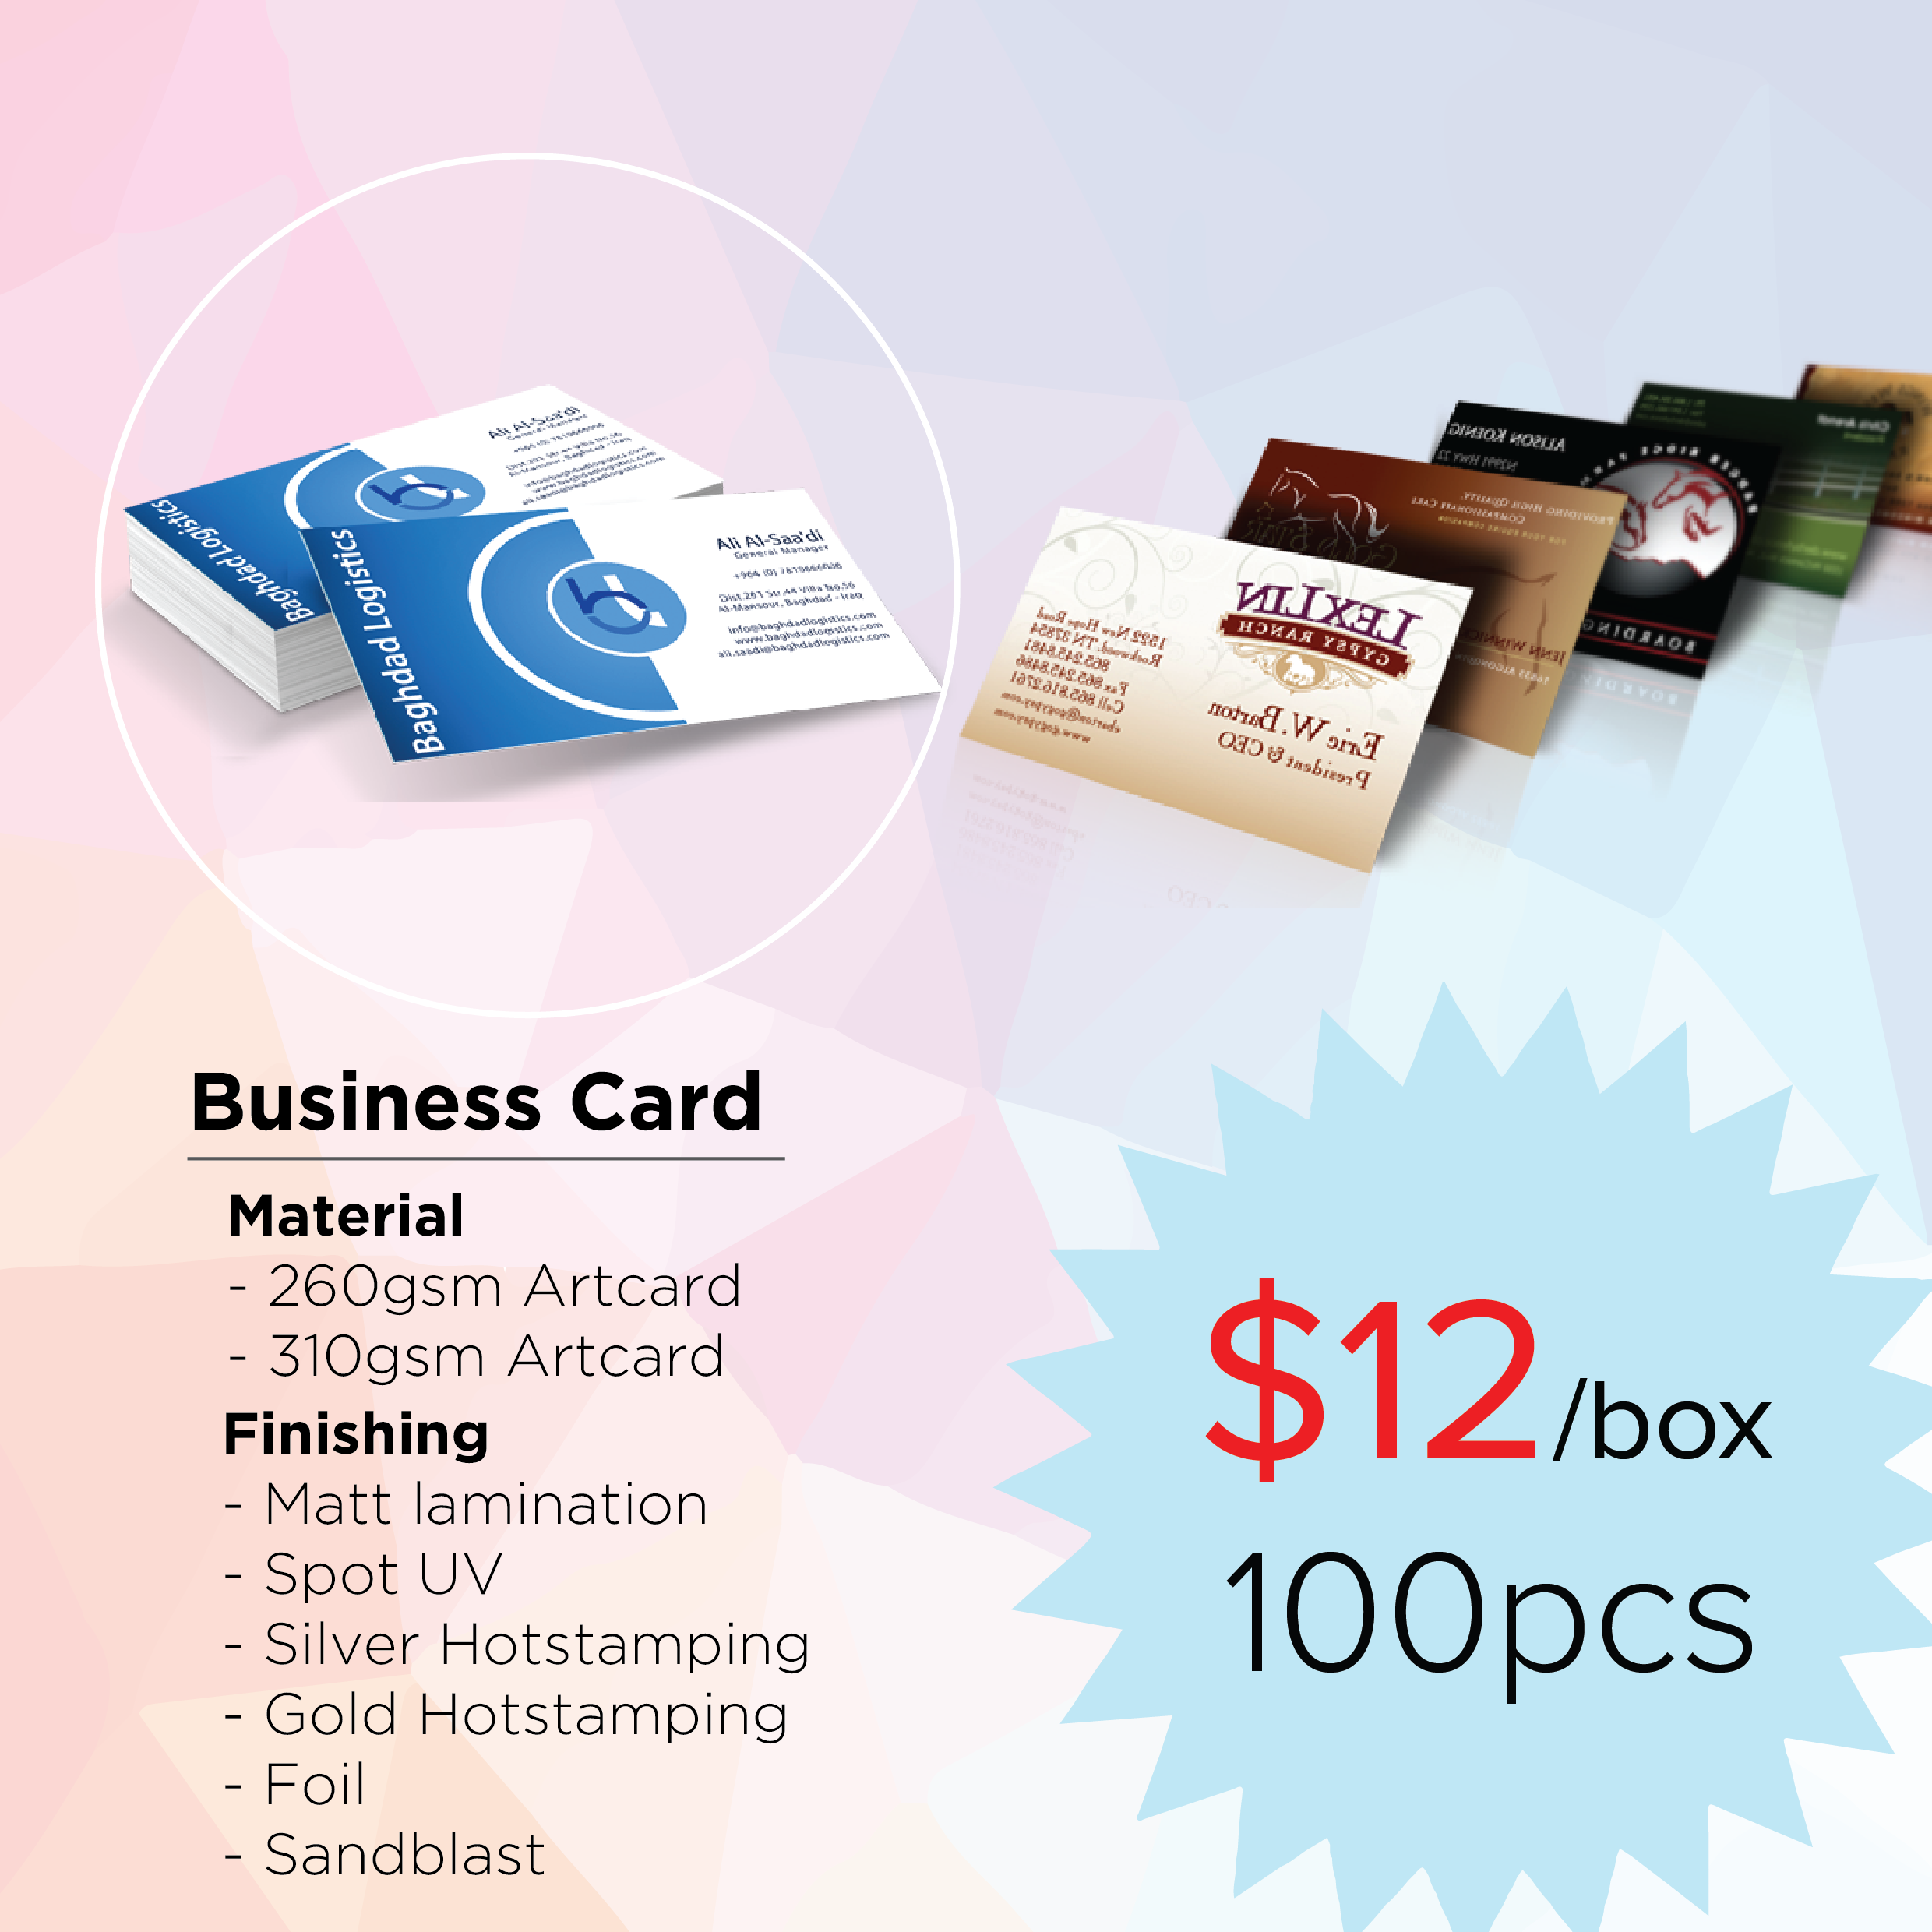 Business Card Printing Singapore Jurong - Best Business 2017